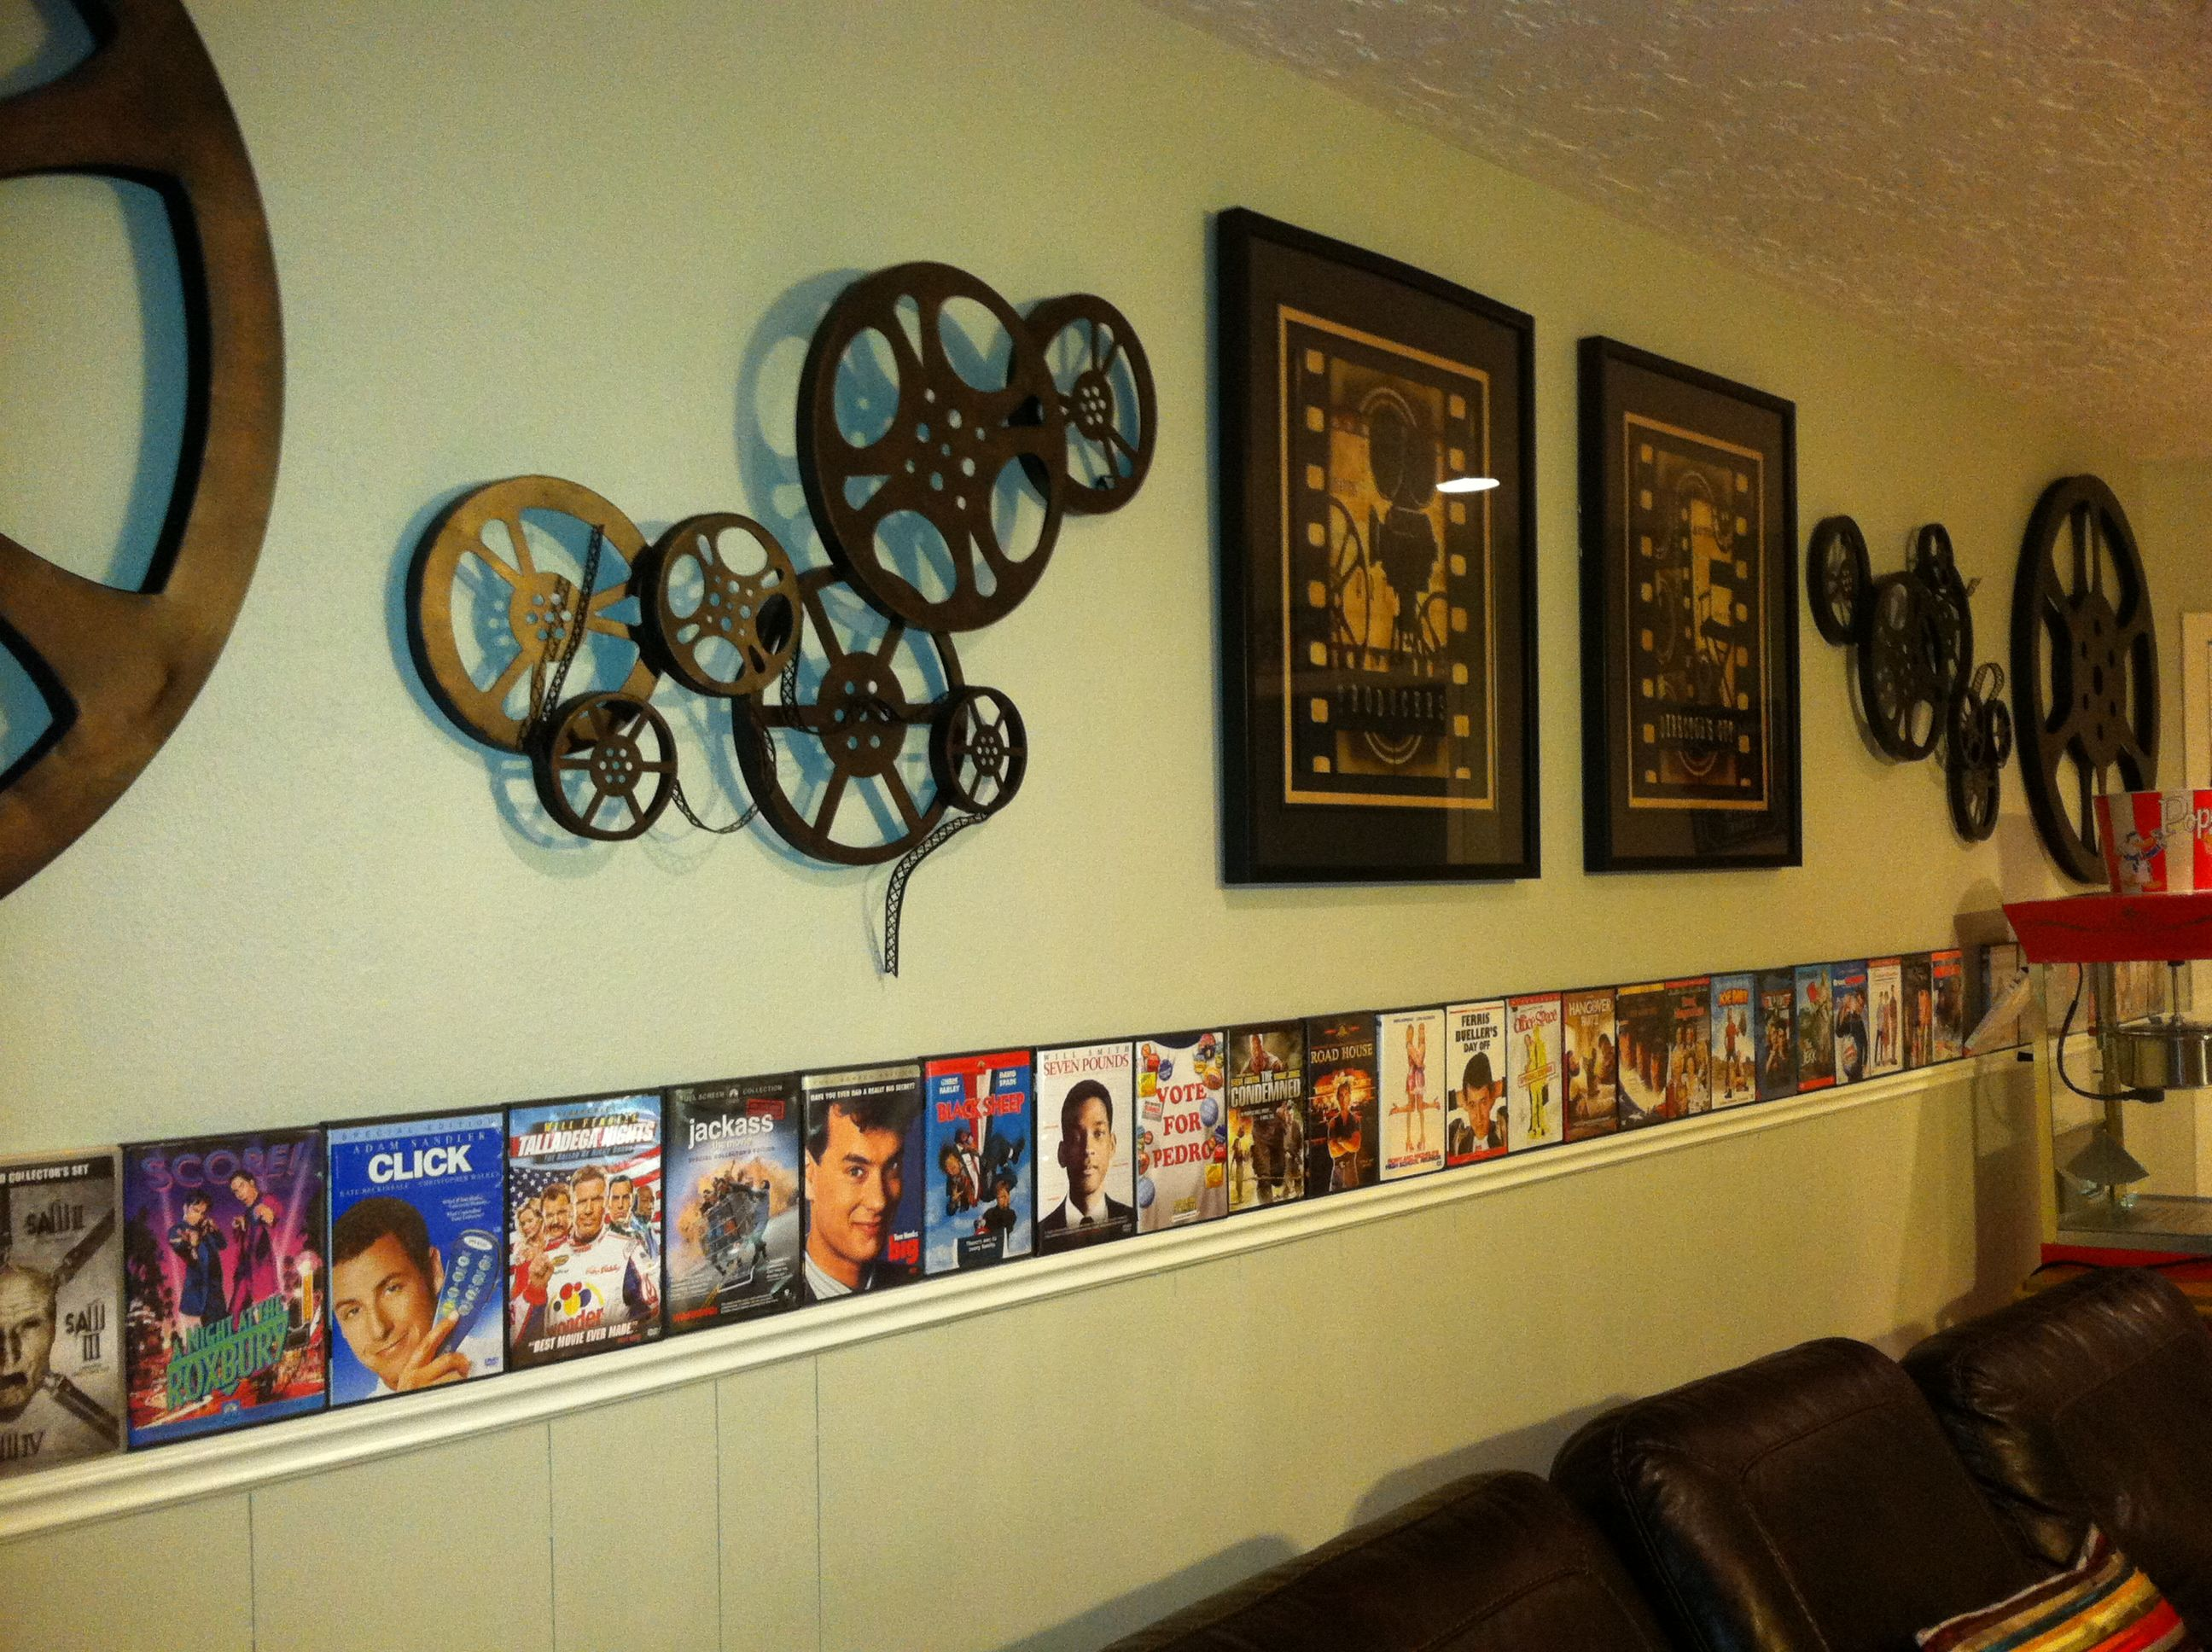 Theater Room Ideas Take Empty Dvd Boxes And Display Along The